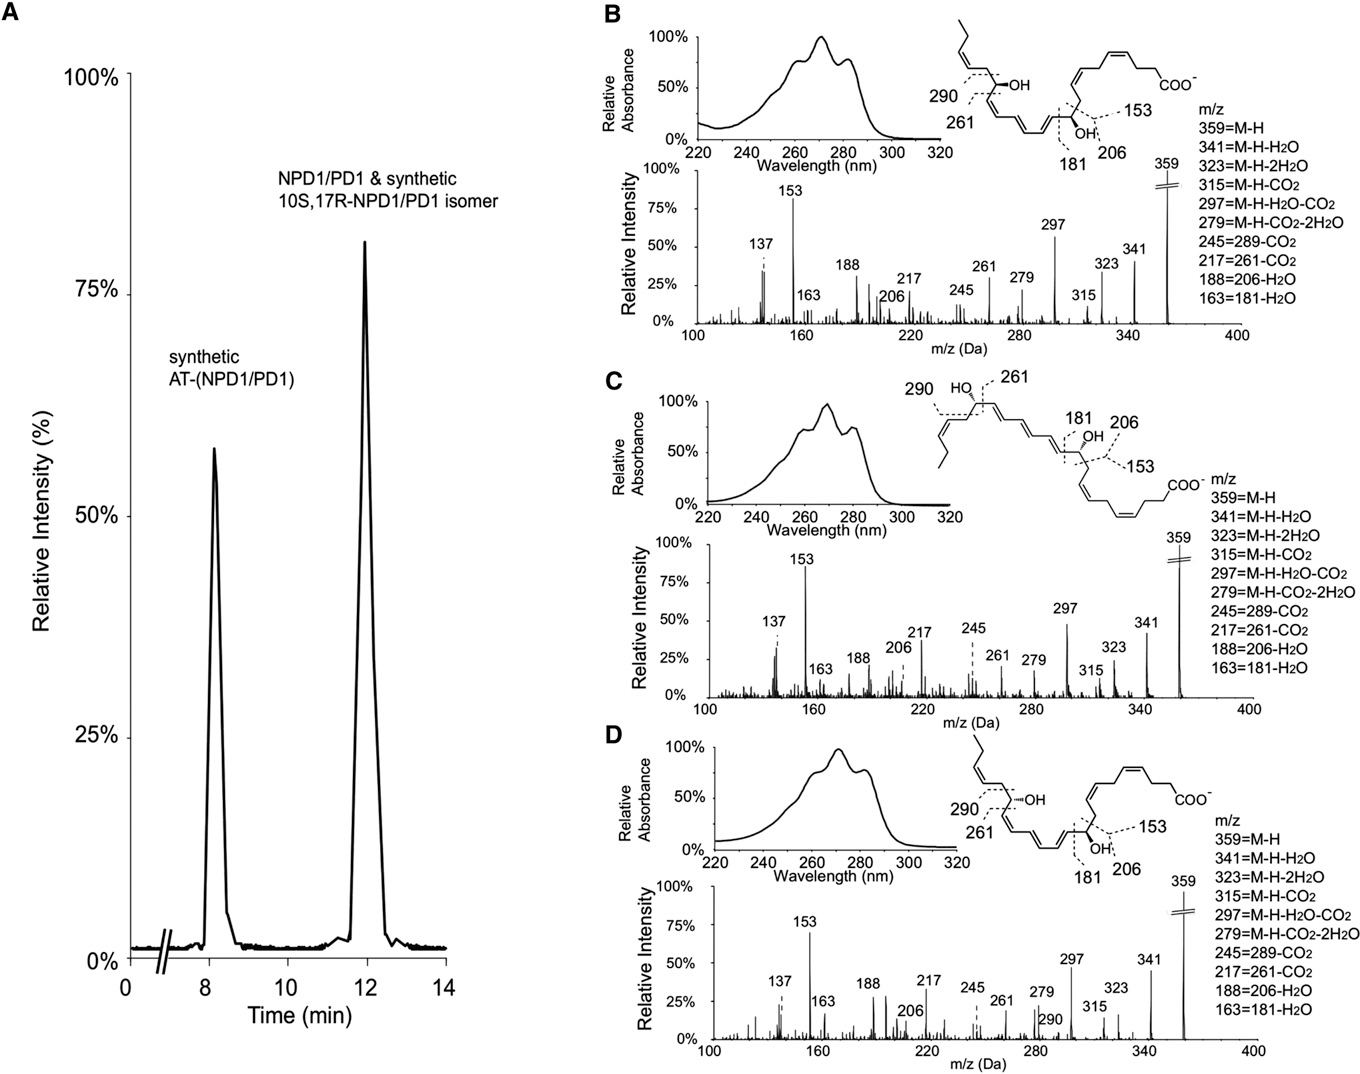 Figure 3. LC-MS-MS Lipidomics and Properties of Synthetic AT-(NPD1/PD1), NPD1/PD1, and Their Isomers (A) MRM chromatogram (m/z 359 > 153) of coinjection of synthetic AT-(NPD1/PD1), 10S,17R-AT-(NPD1/PD1) isomer, and NPD1/PD1 is shown. AT-(NPD1/PD1) and NPD1/PD1 separate in this LC system, with retention times of 8.2 and 12.0 min. (B–D) Representative tandem mass and UV spectra of synthetic AT-(NPD1/PD1) (B), D15-trans-NPD1/PD1 (C), and NPD1/PD1 (D) are shown.